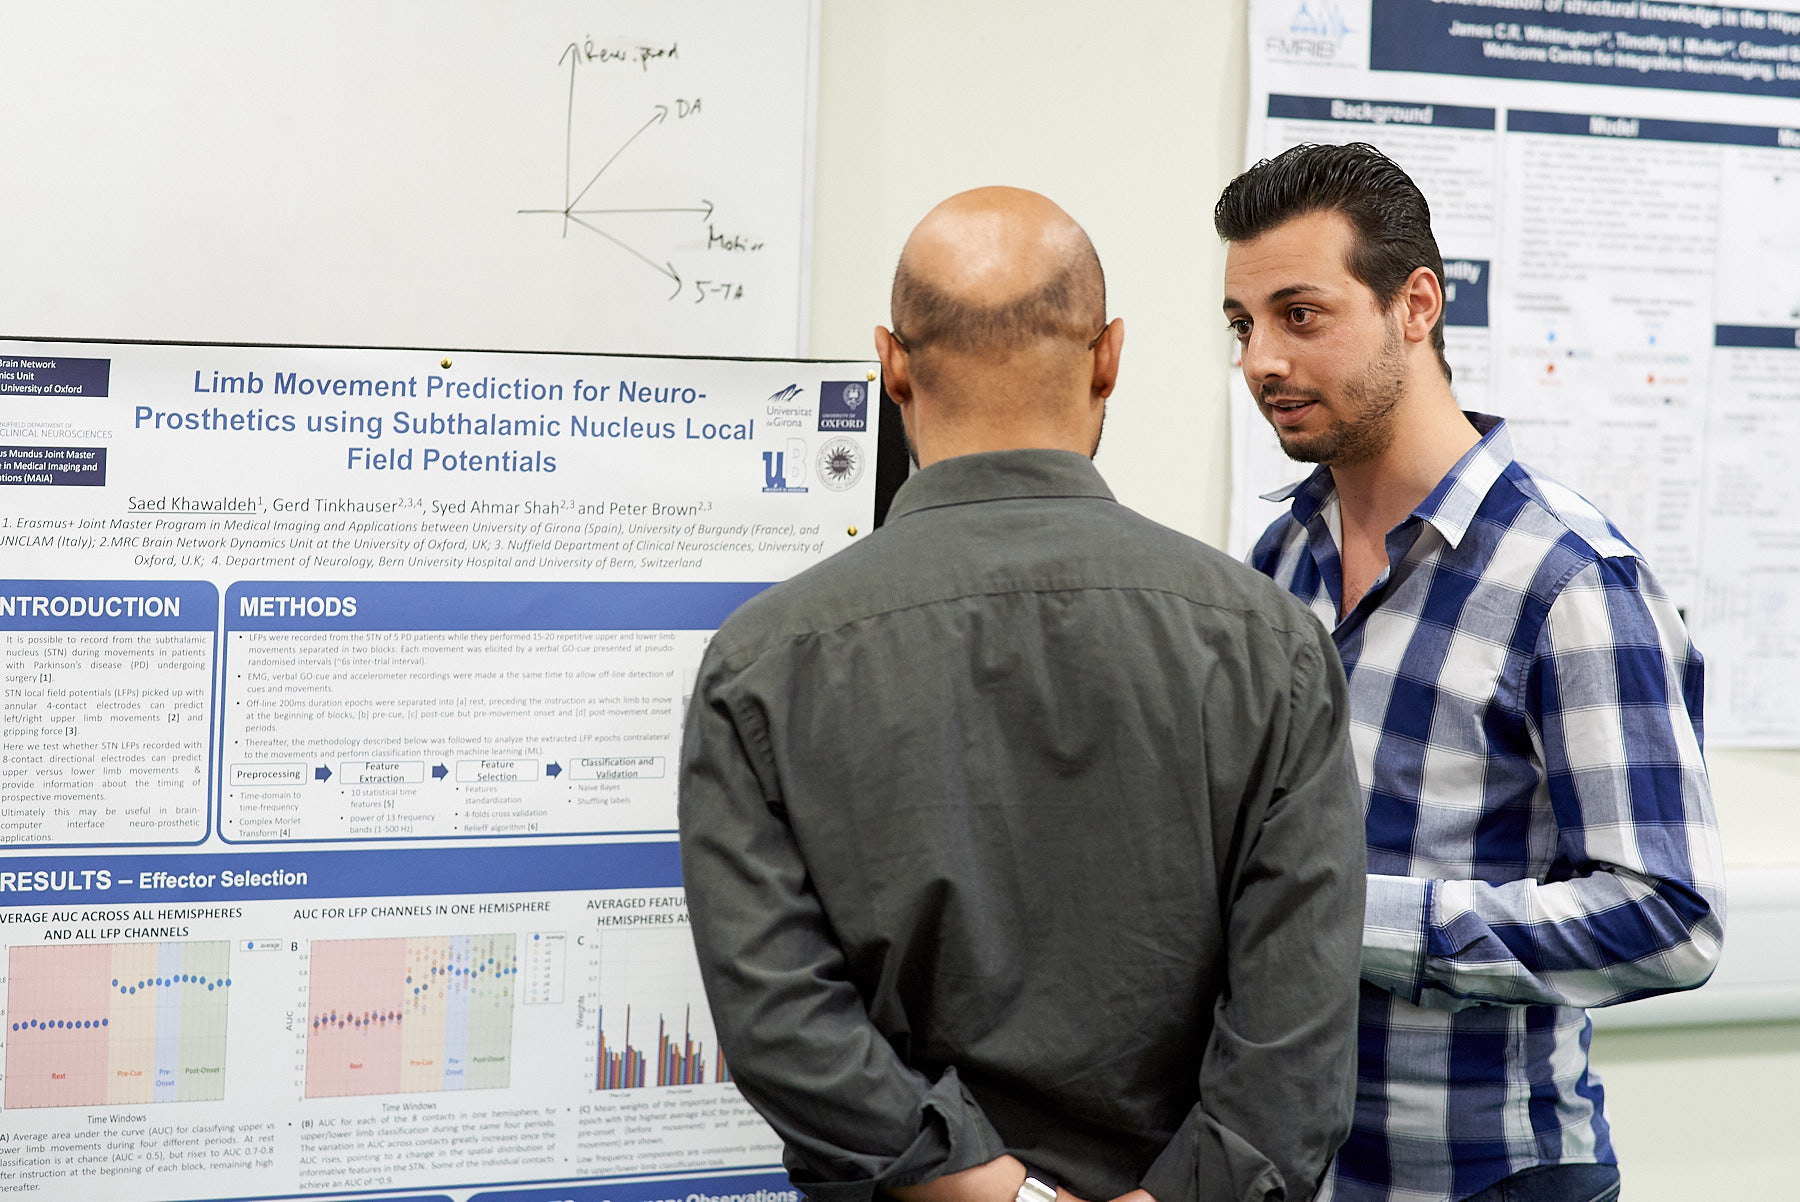 Detailed discussions during the poster session at summer Science Day 2018.